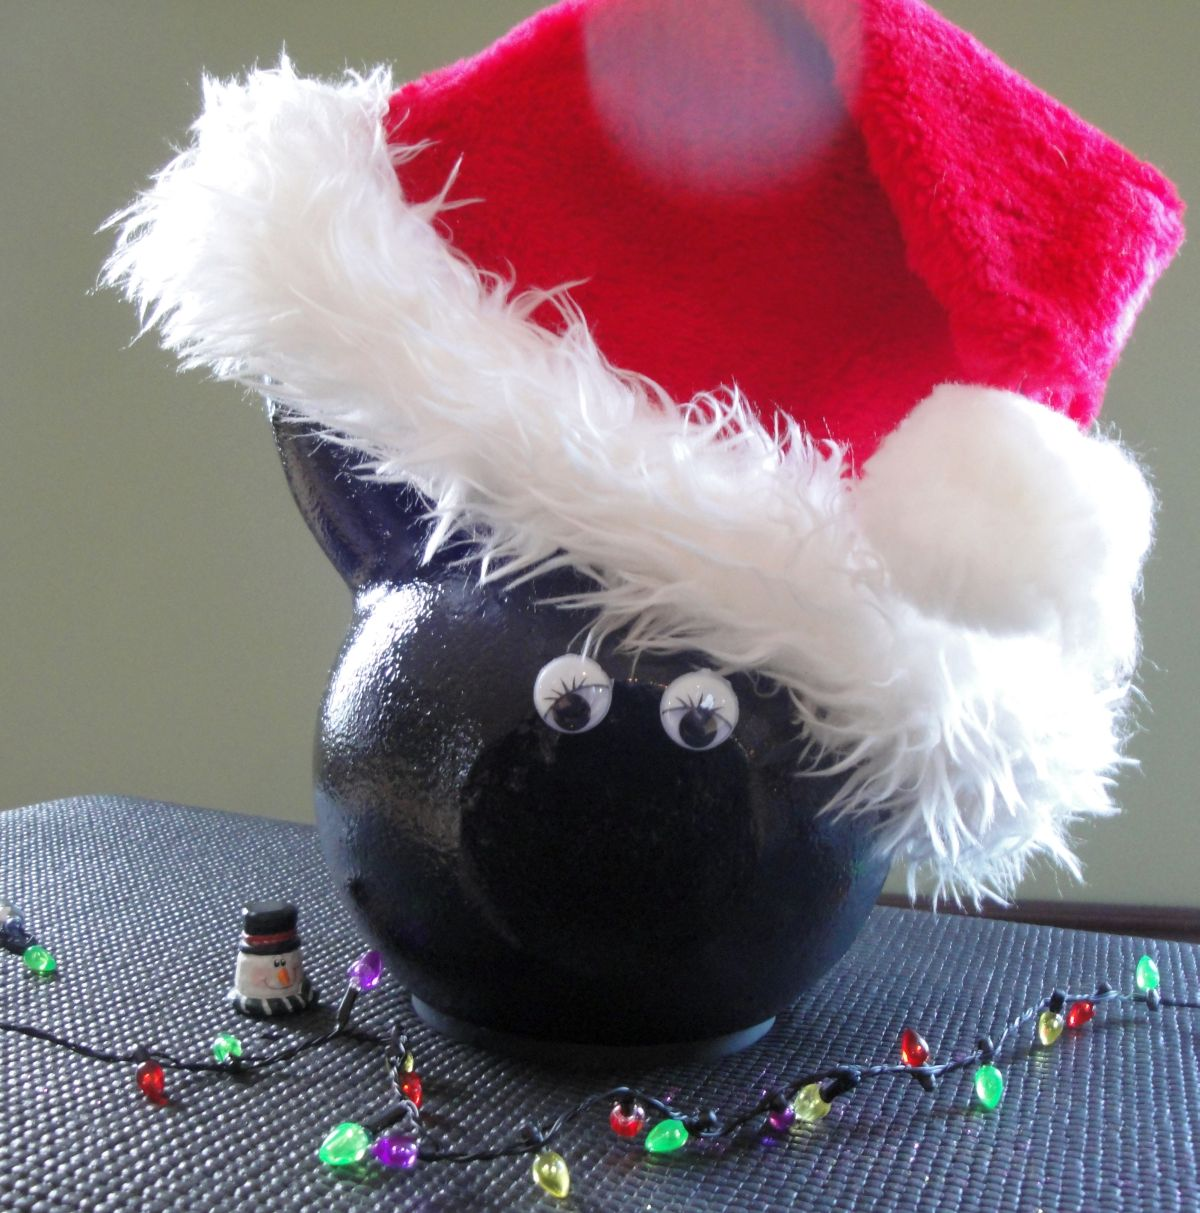 love and joy come to you: kettlebell caroling | the whole way